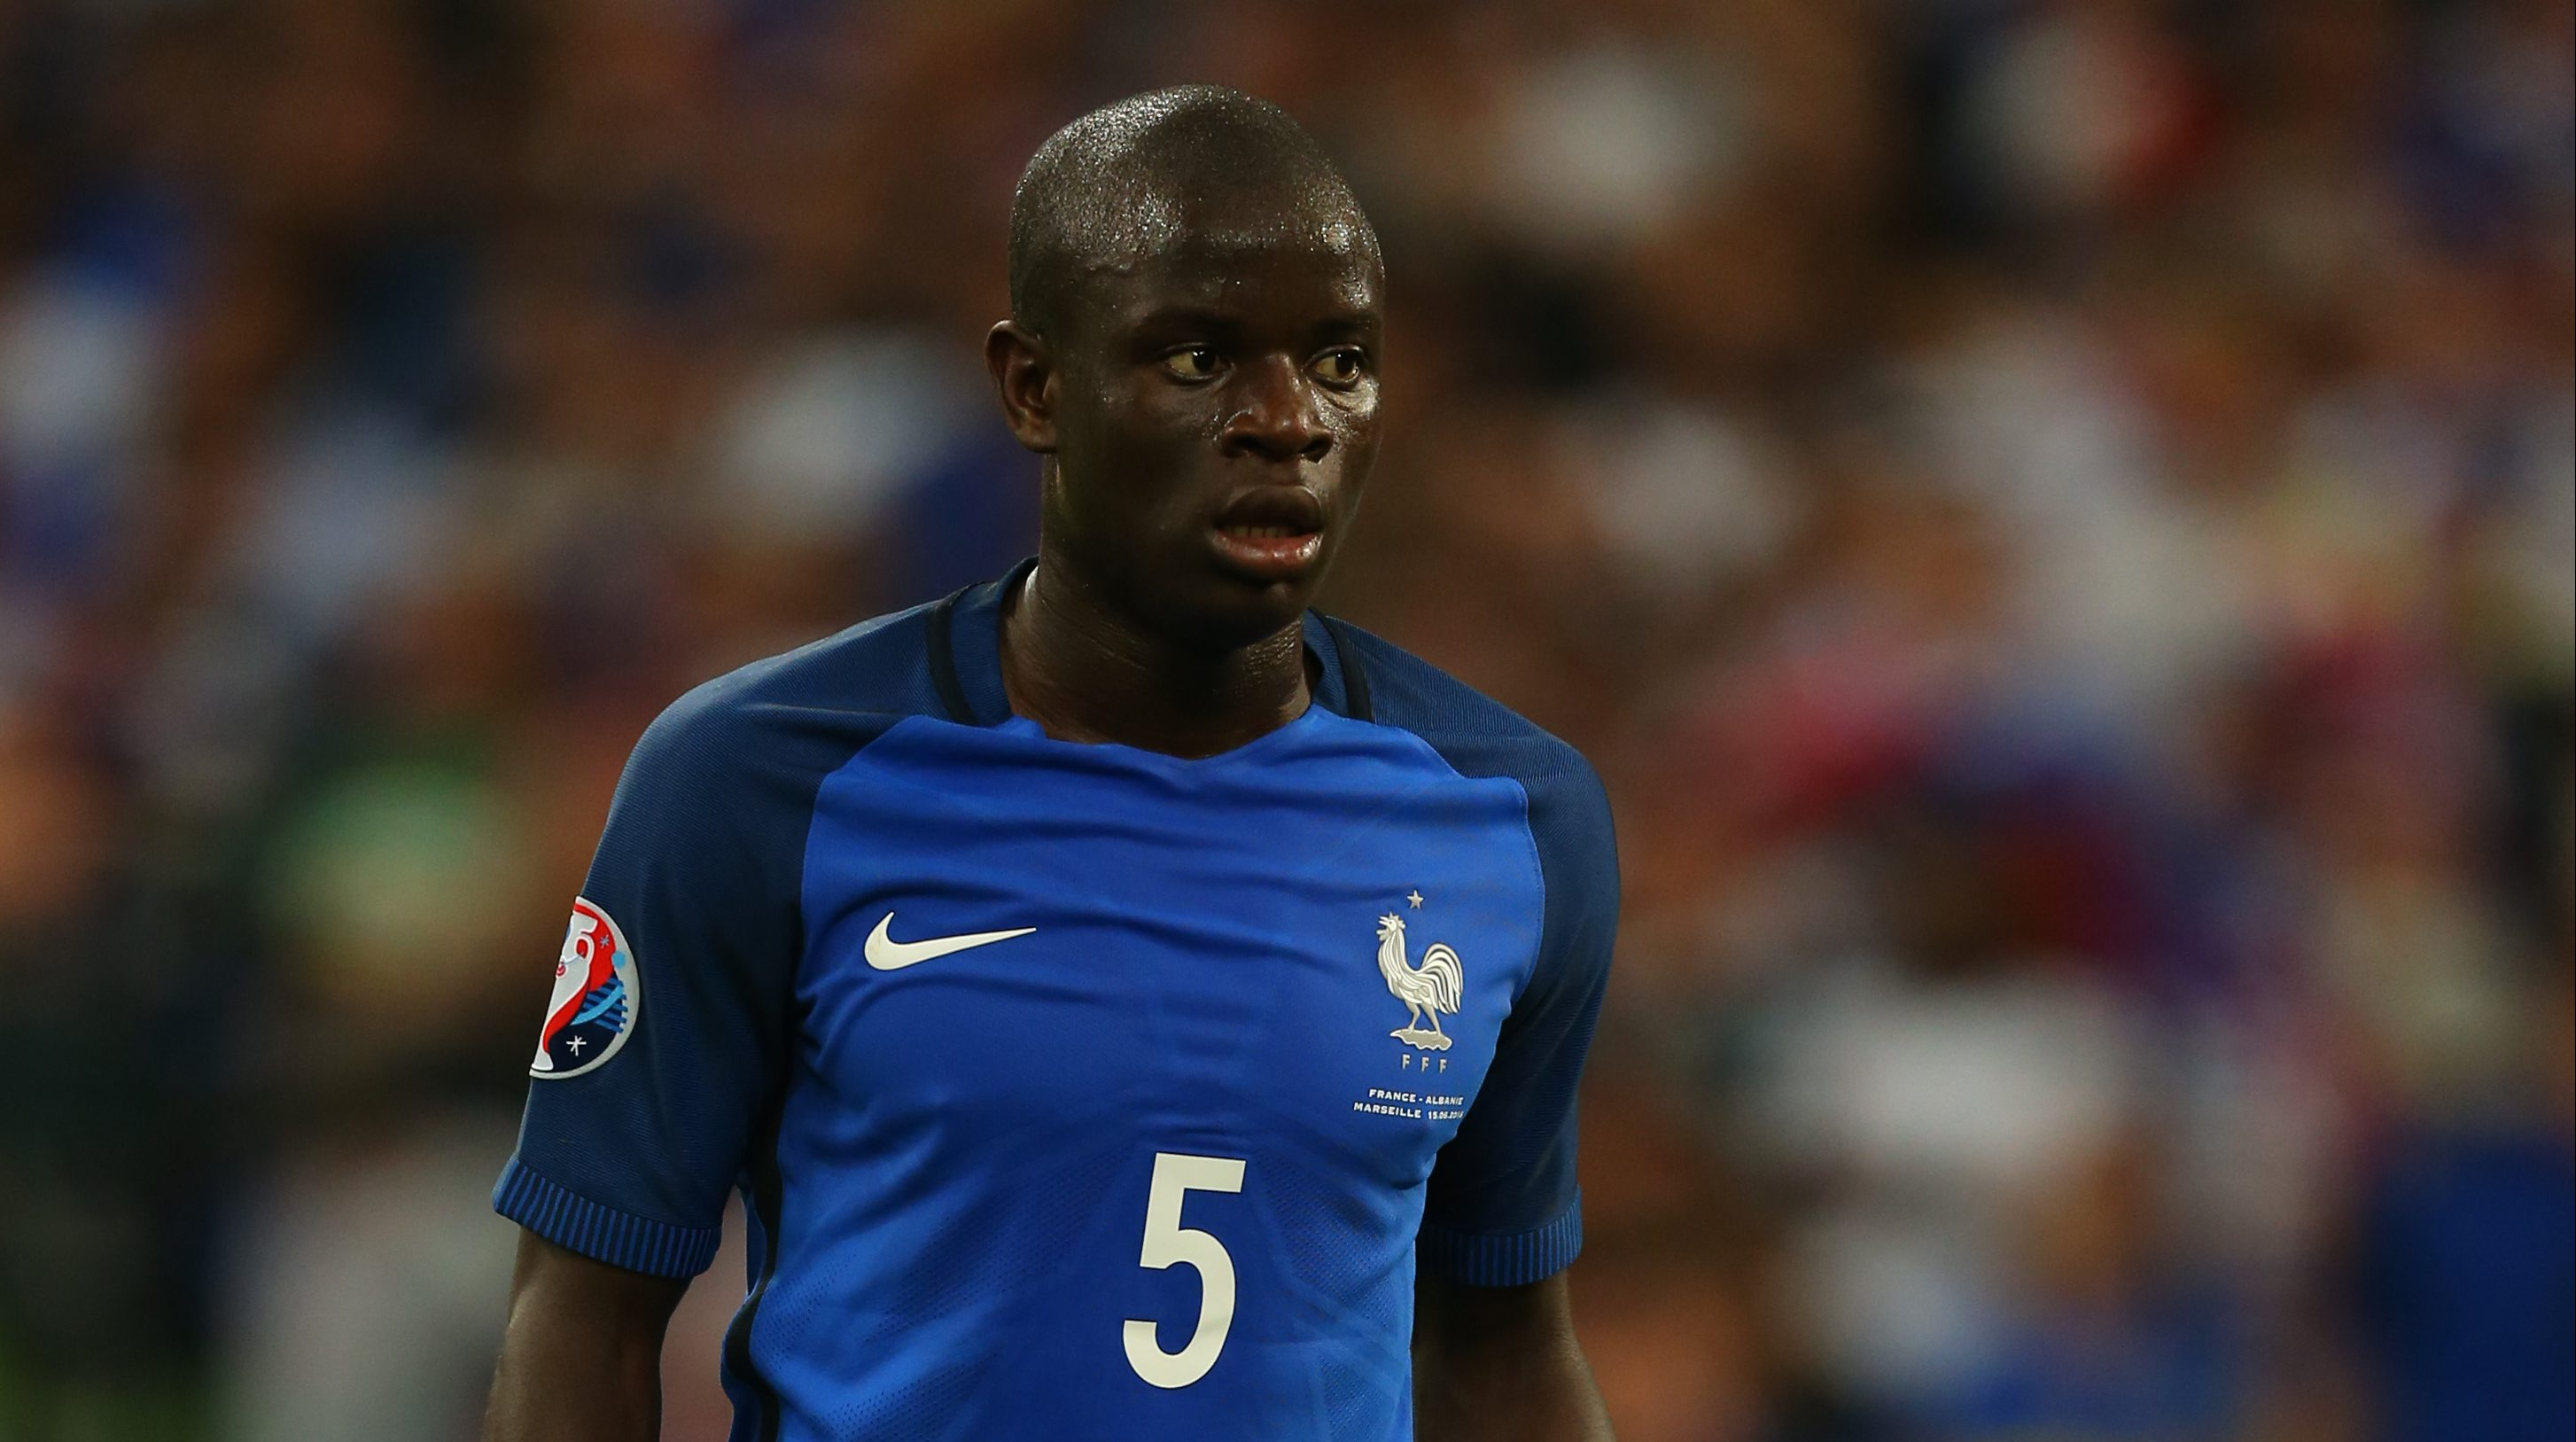 Chelsea set to complete transfer of Leicester City midfielder N'Golo Kante